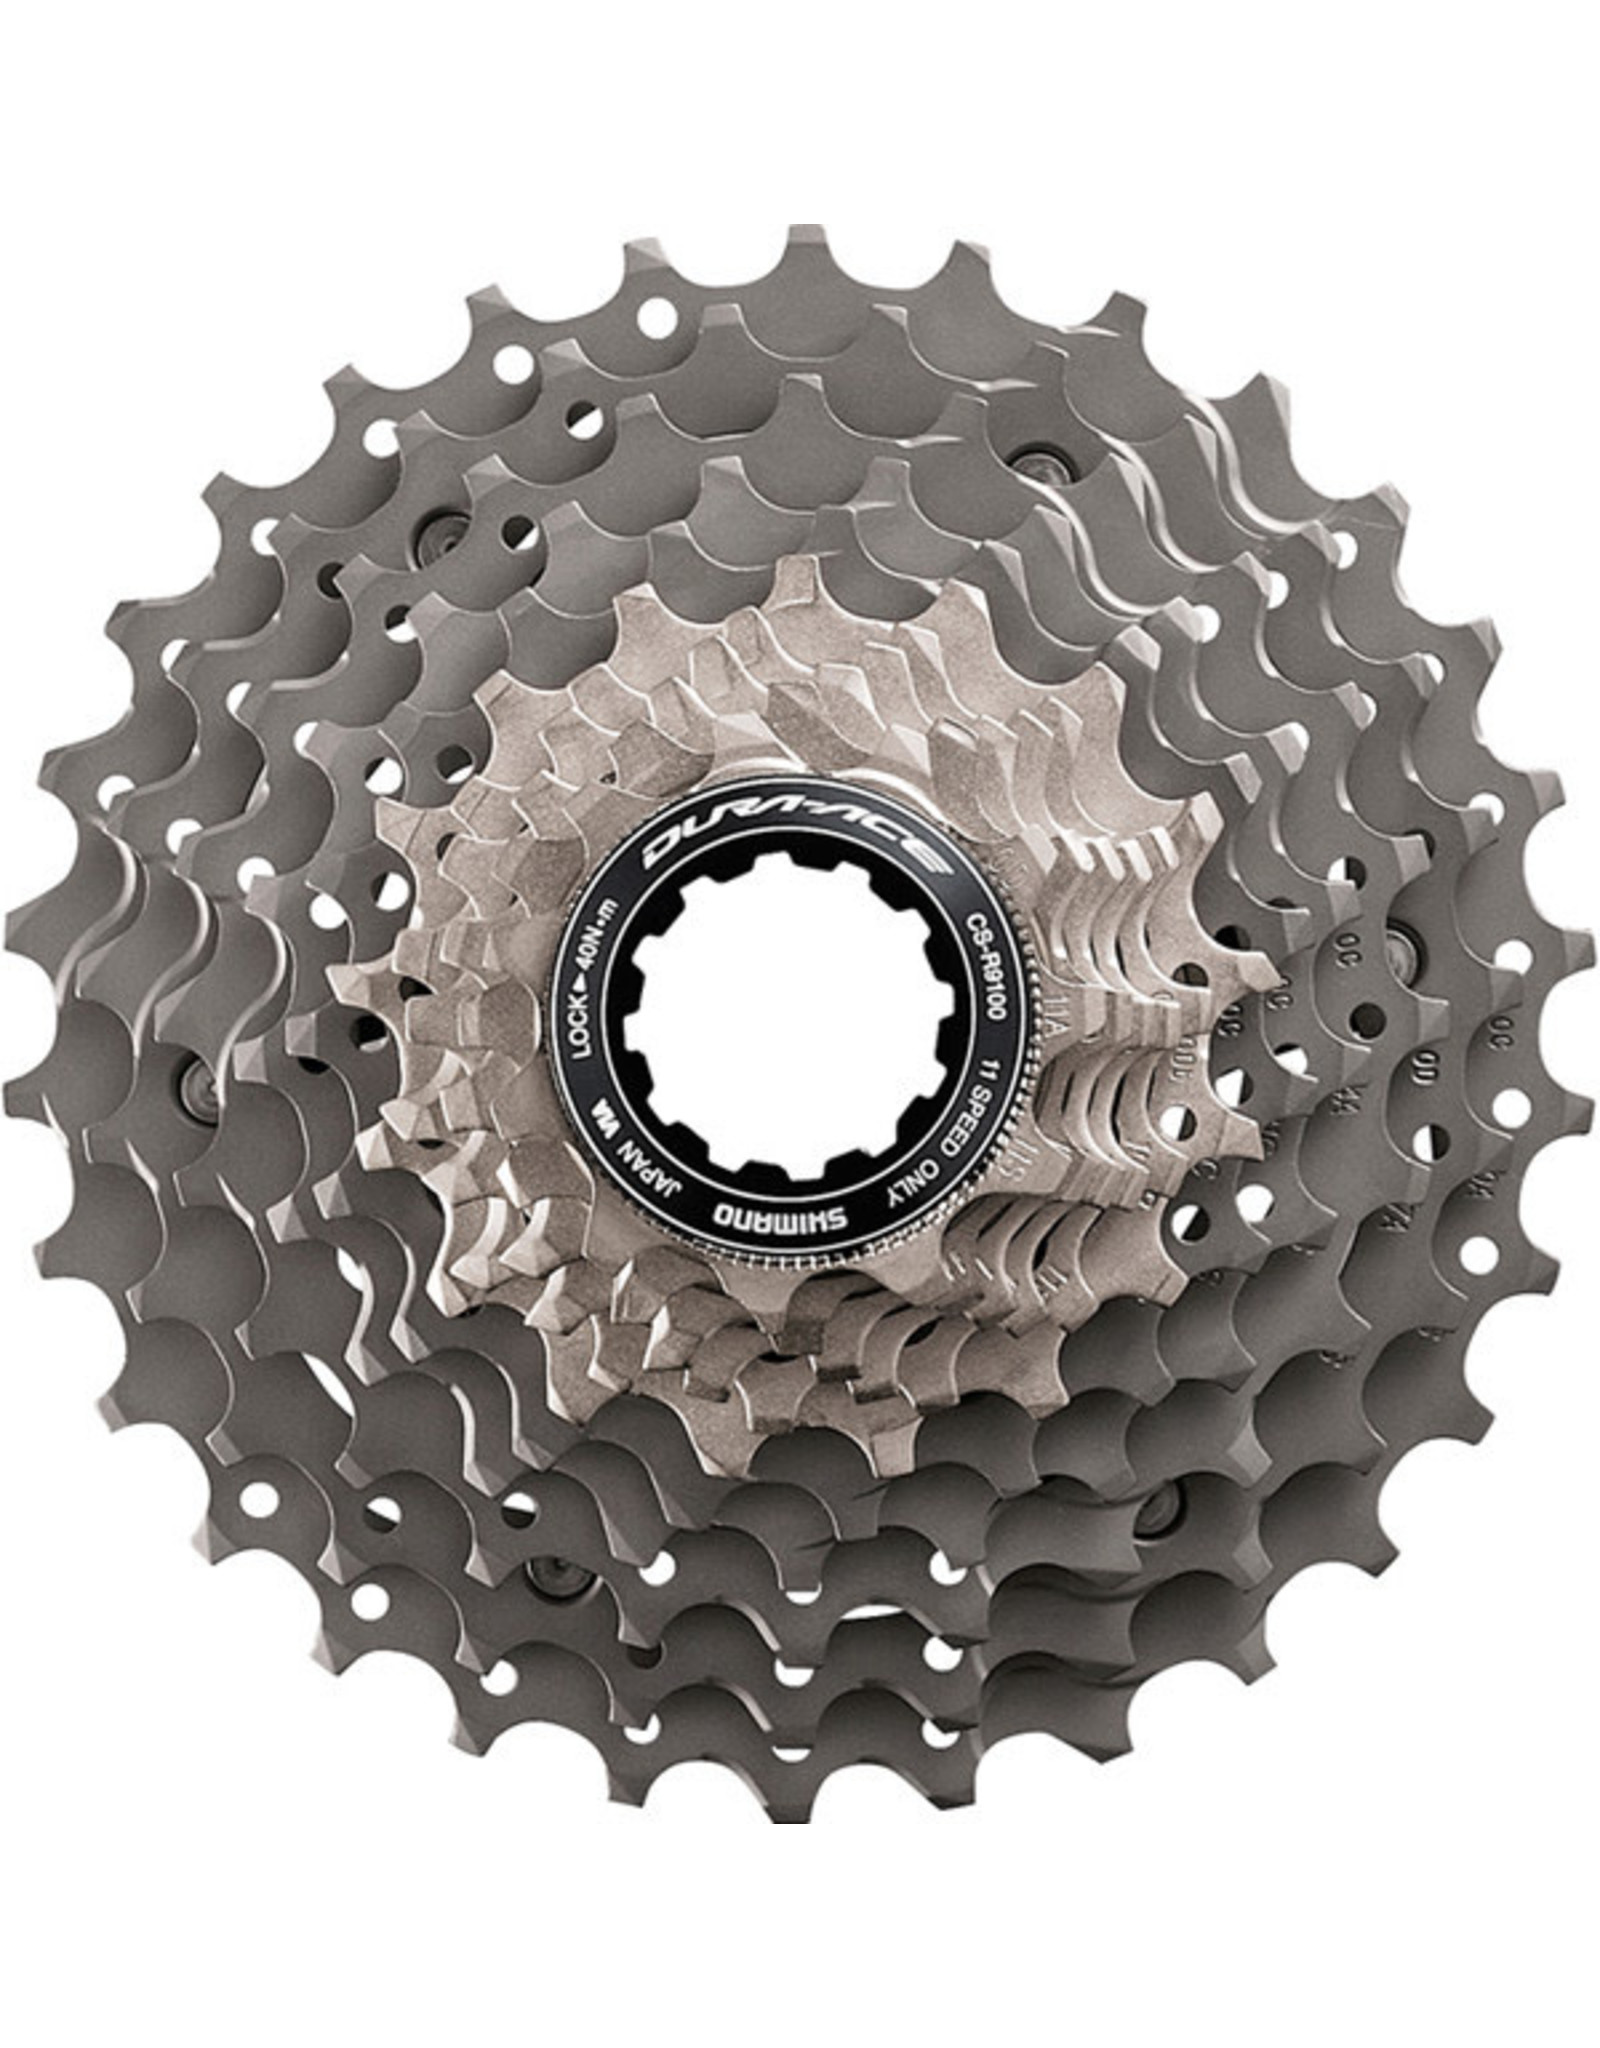 Shimano Cassette 11 Speed Dura-Ace R9100